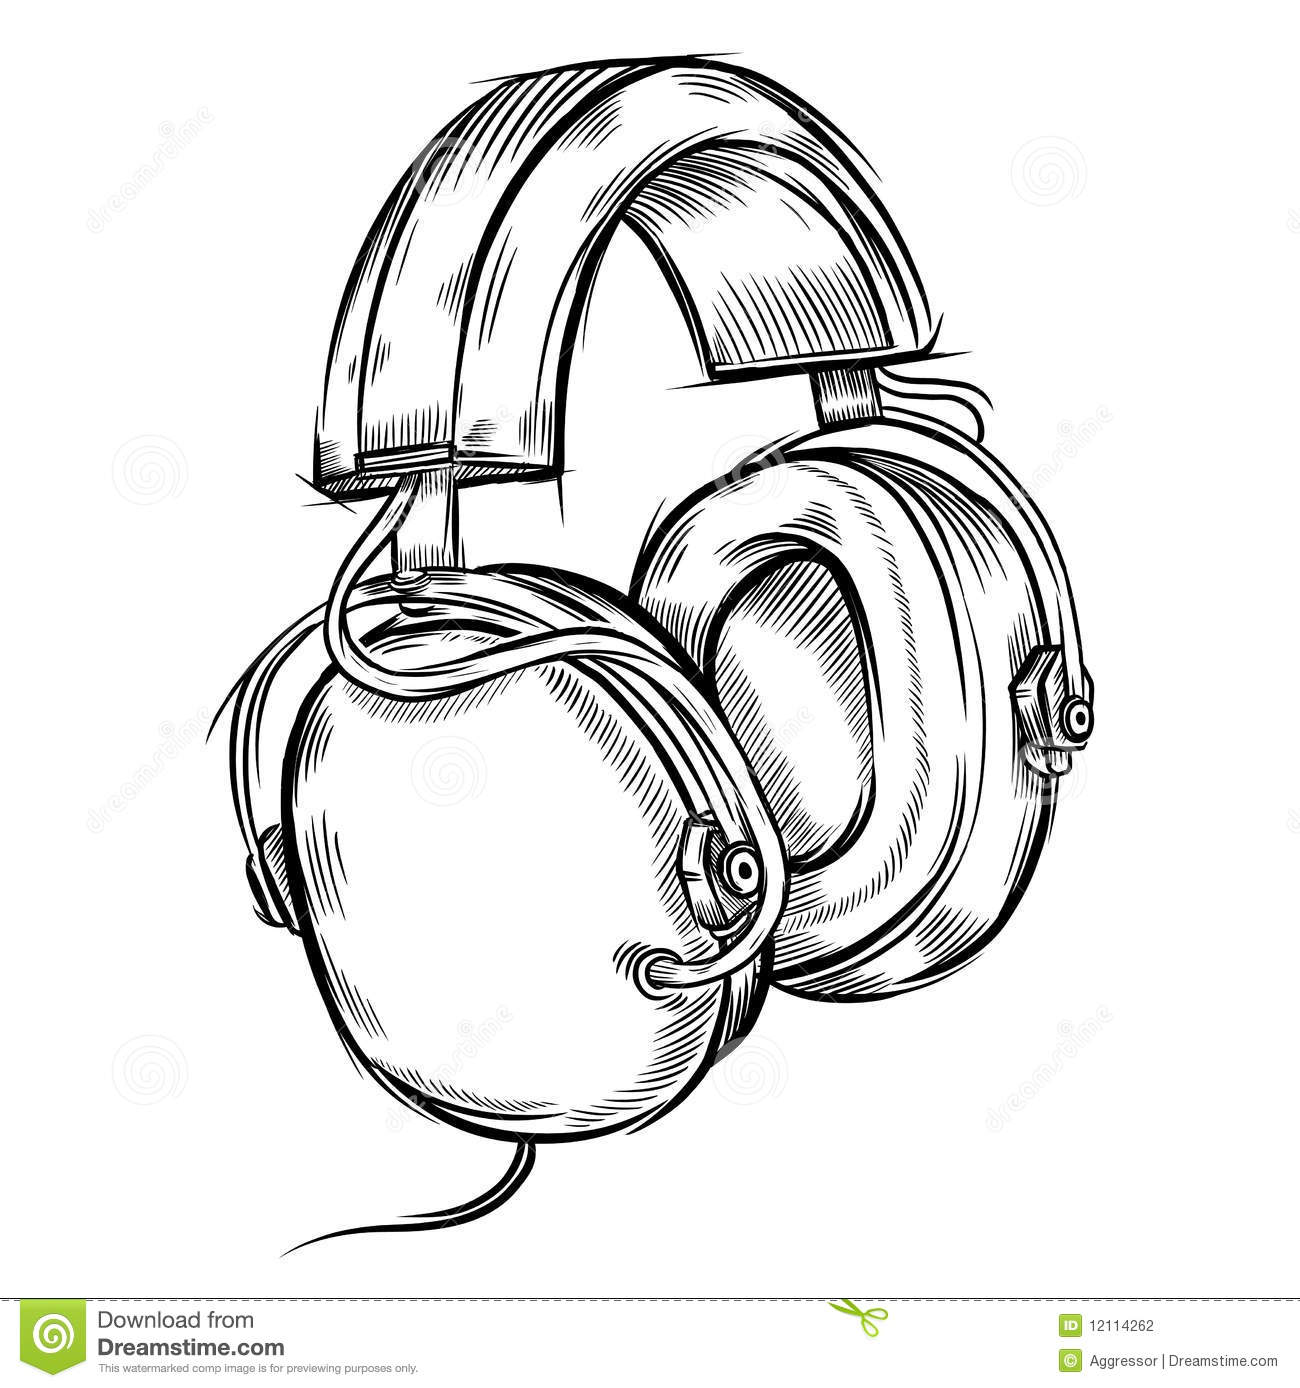 Line Art Headphones : Hand drawn headphones stock vector illustration of